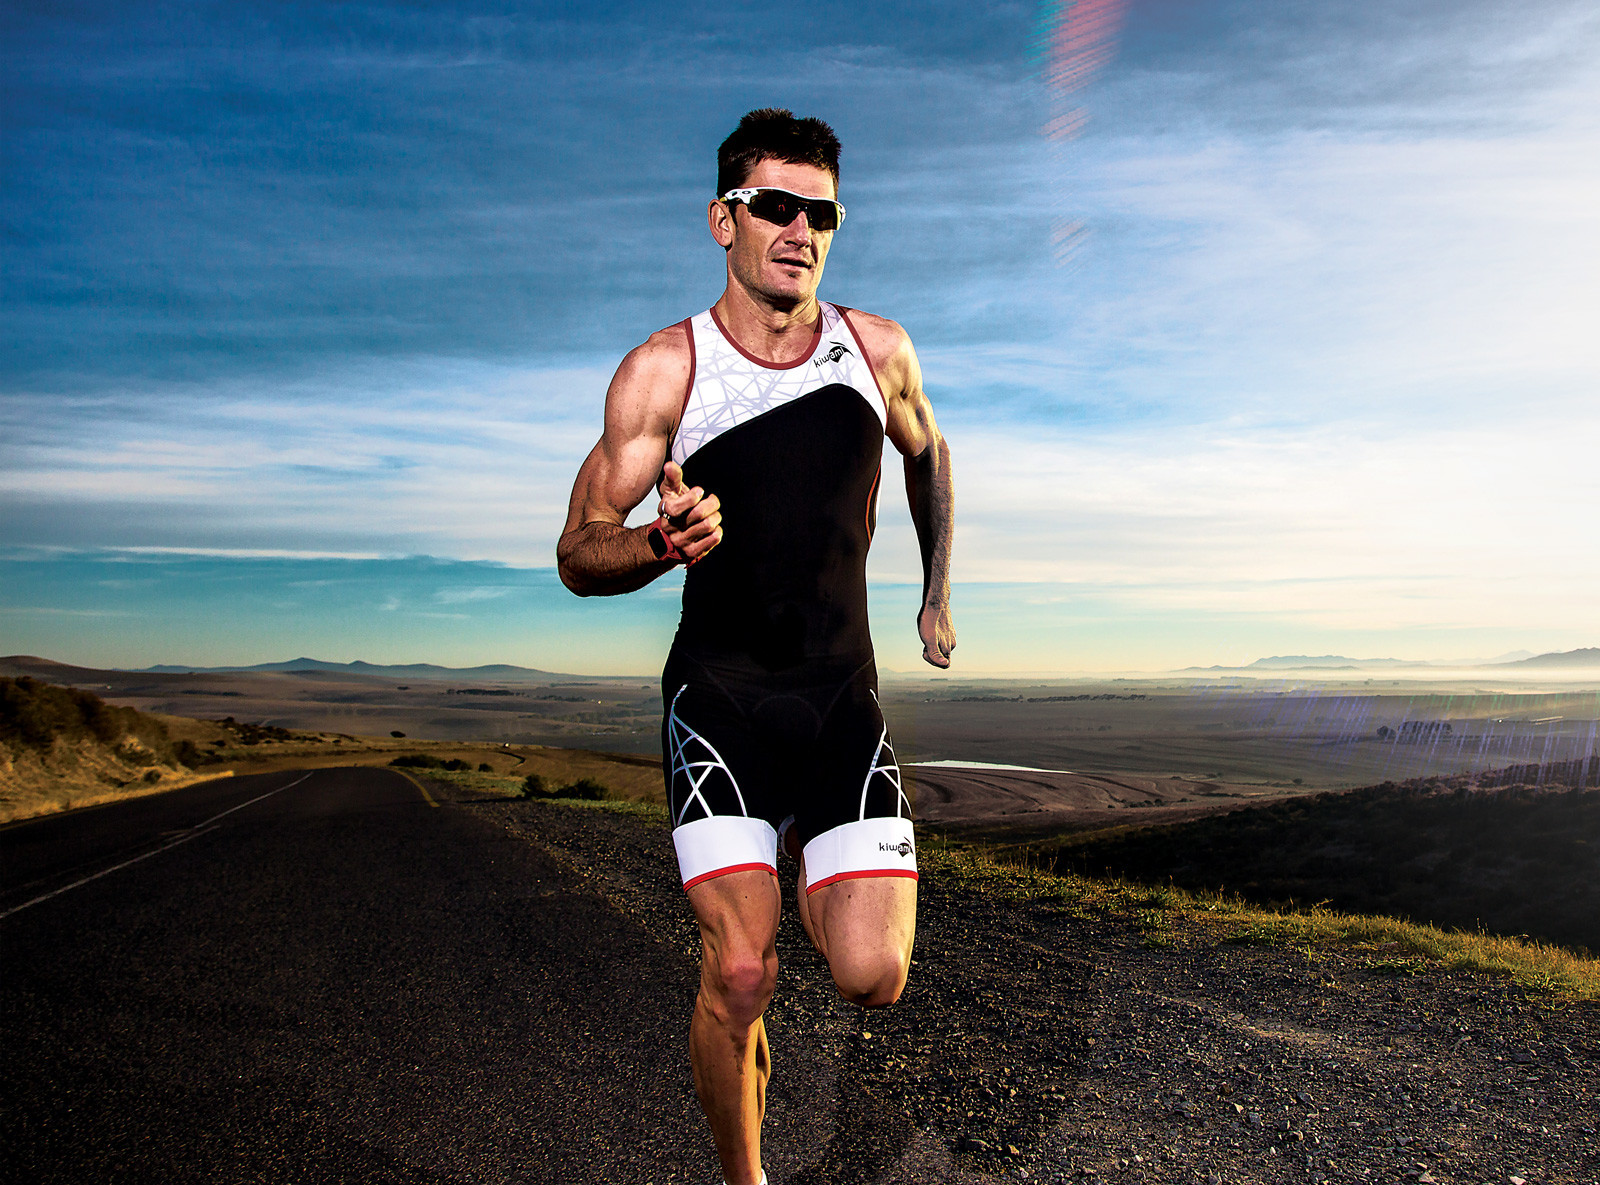 Triathlete Richard Murray runs 28:04, third-fastest 10K in South African history